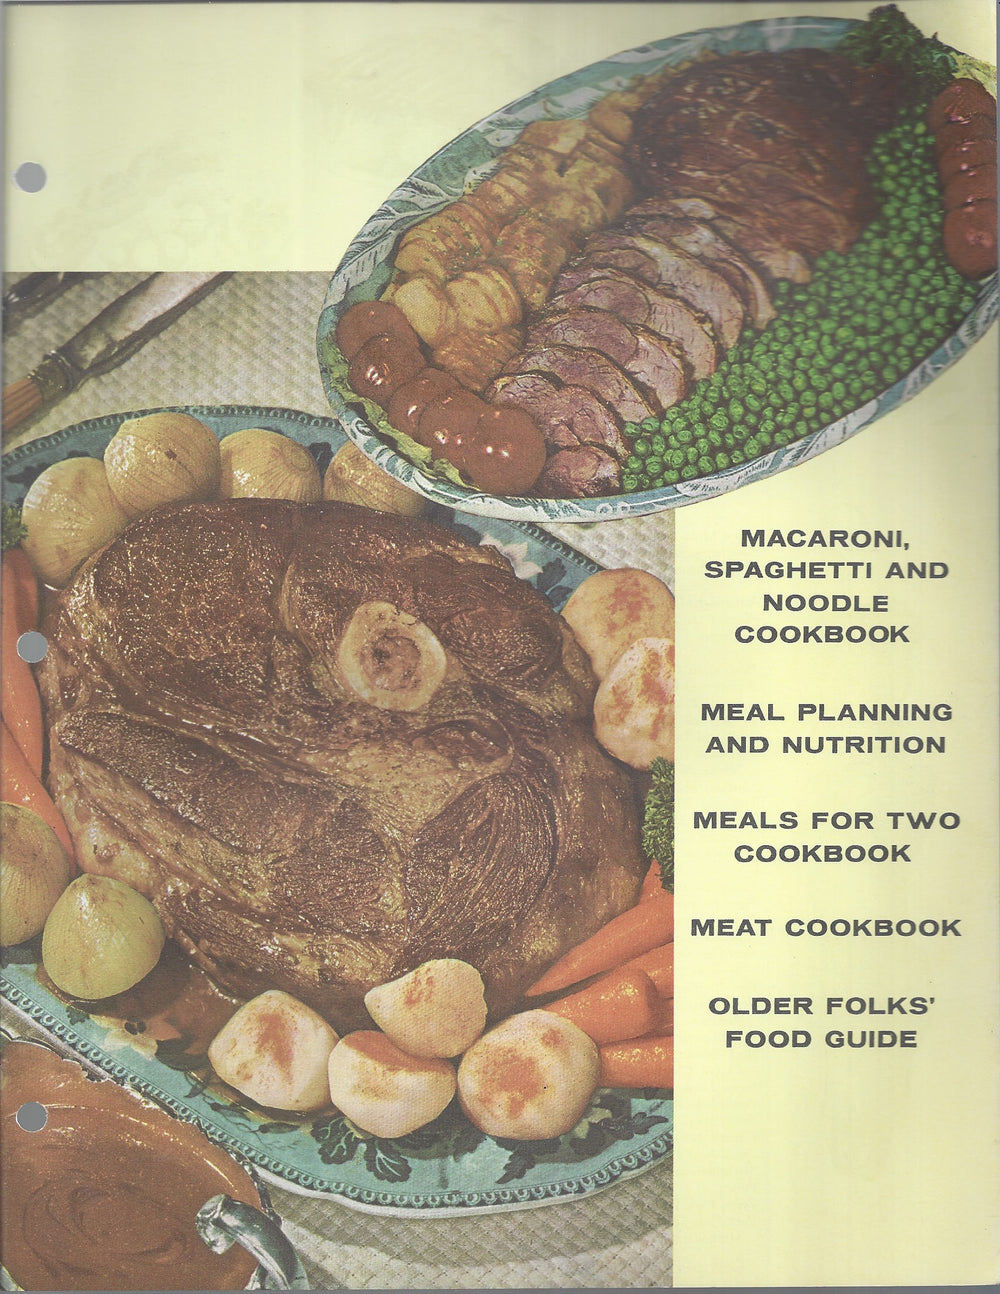 Mary Margaret McBride Encyclopedia of Cooking Cook Book Deluxe Edition 1960 (2ND EDITION) (Cover Page-Macaroni, Spaghetti-Older Folks Food)